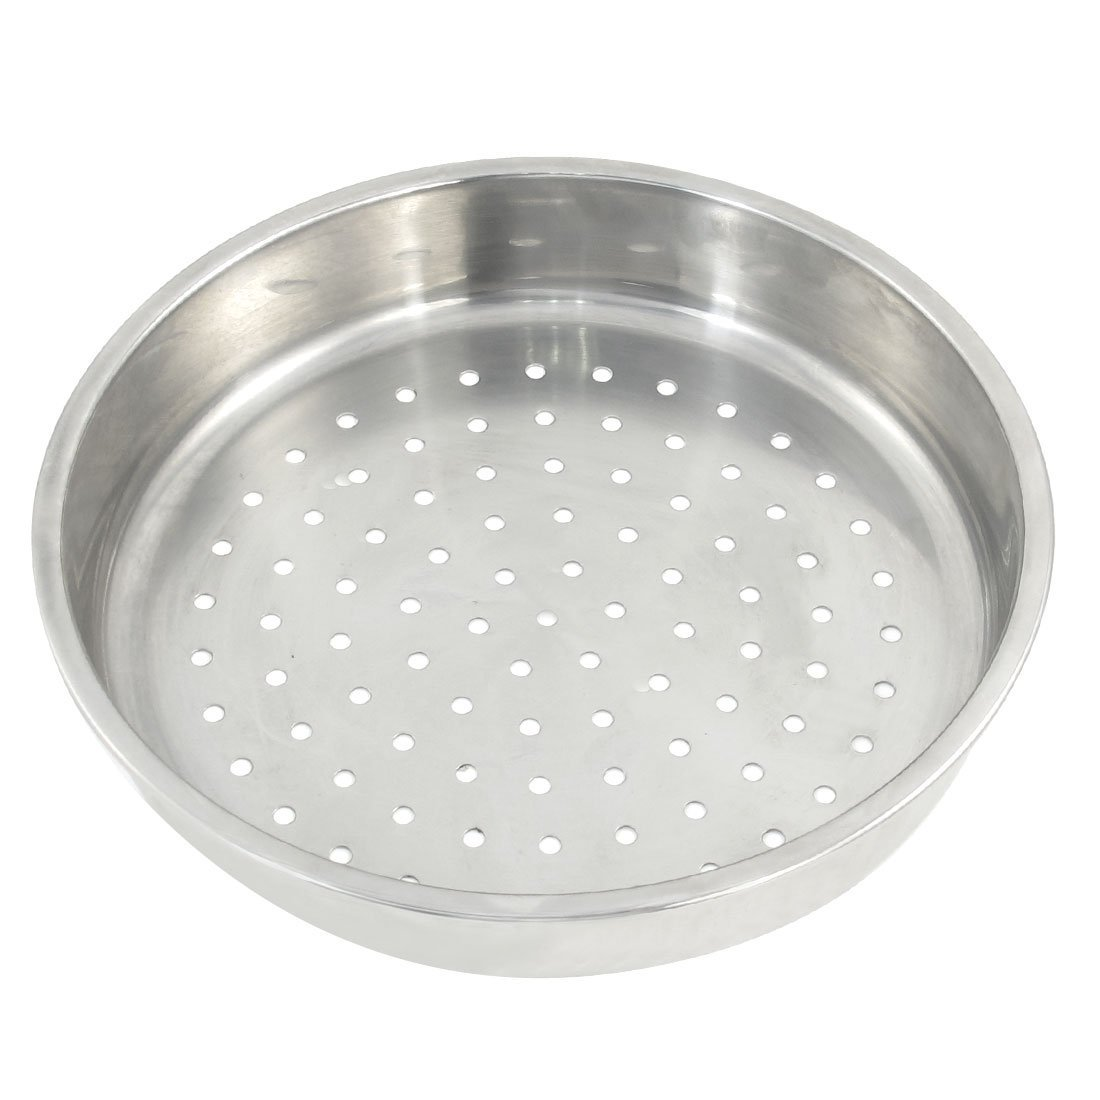 Botique Round Stainless Steel Food Cooking Steamer Rack Cookware 23cm Dia